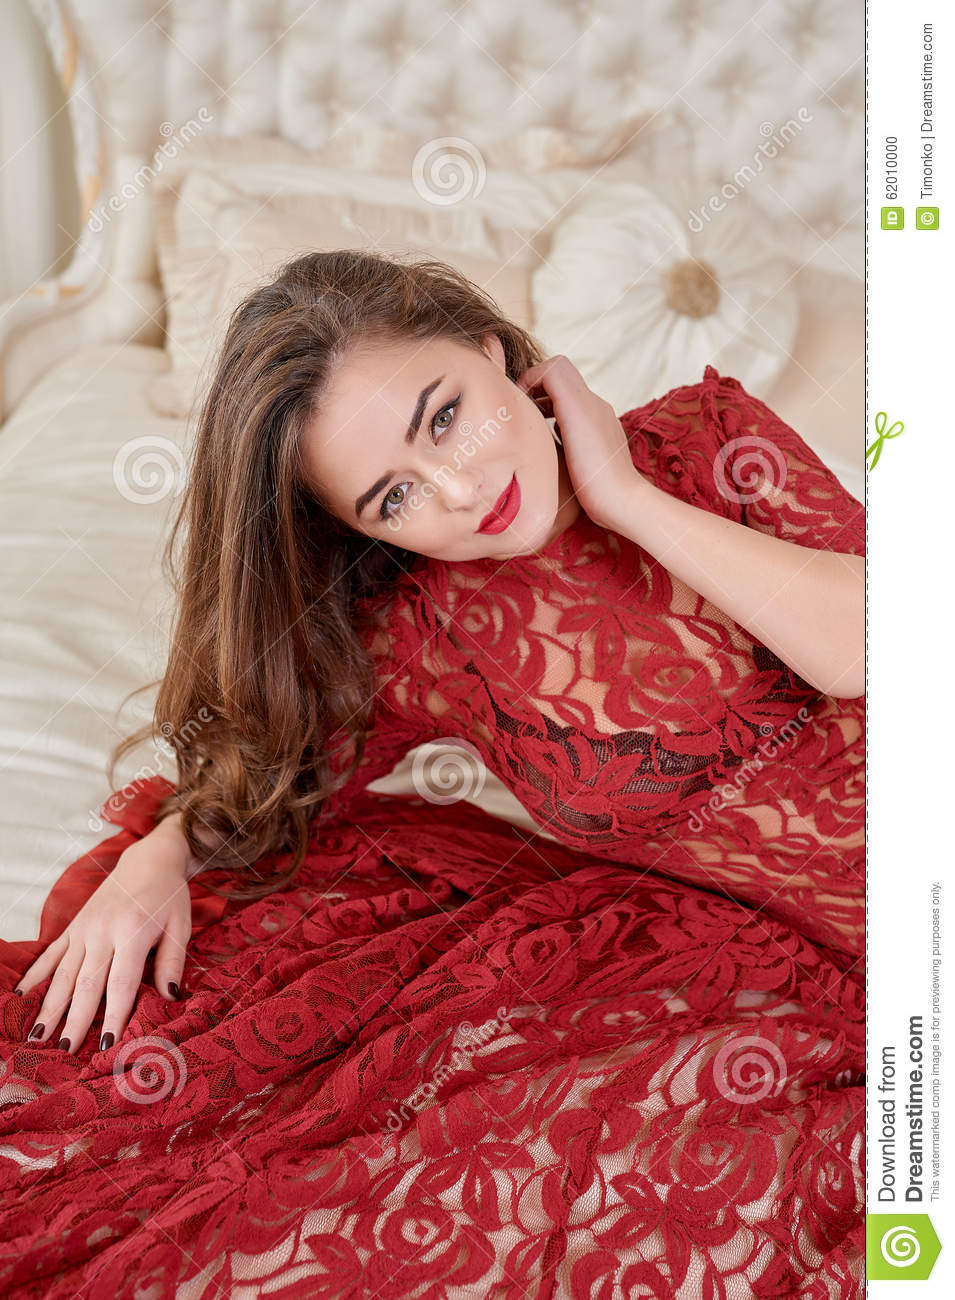 Fashion portrait of elegant young woman in red dress on bed in a luxurious interior